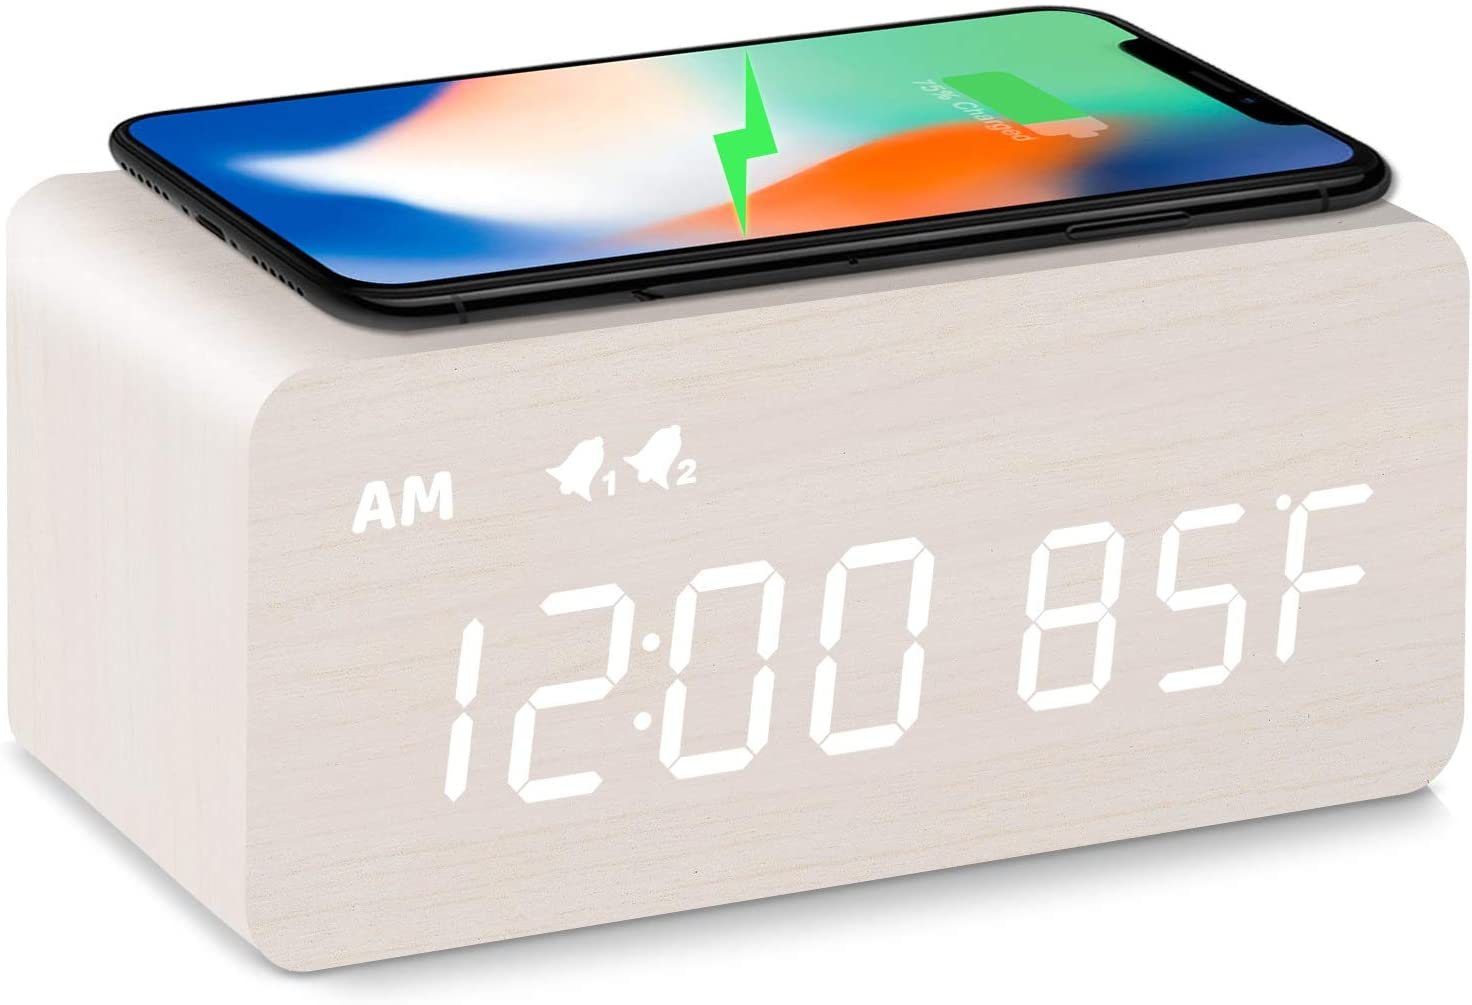 MOSITO Digital Wooden Alarm Clock with Wireless Charging, 0-100% Dimmer, Dual Alarm, Weekday /Weekend Mode, Snooze, Wood LED Clocks for Bedroom, Bedside, Desk, Kids (White)